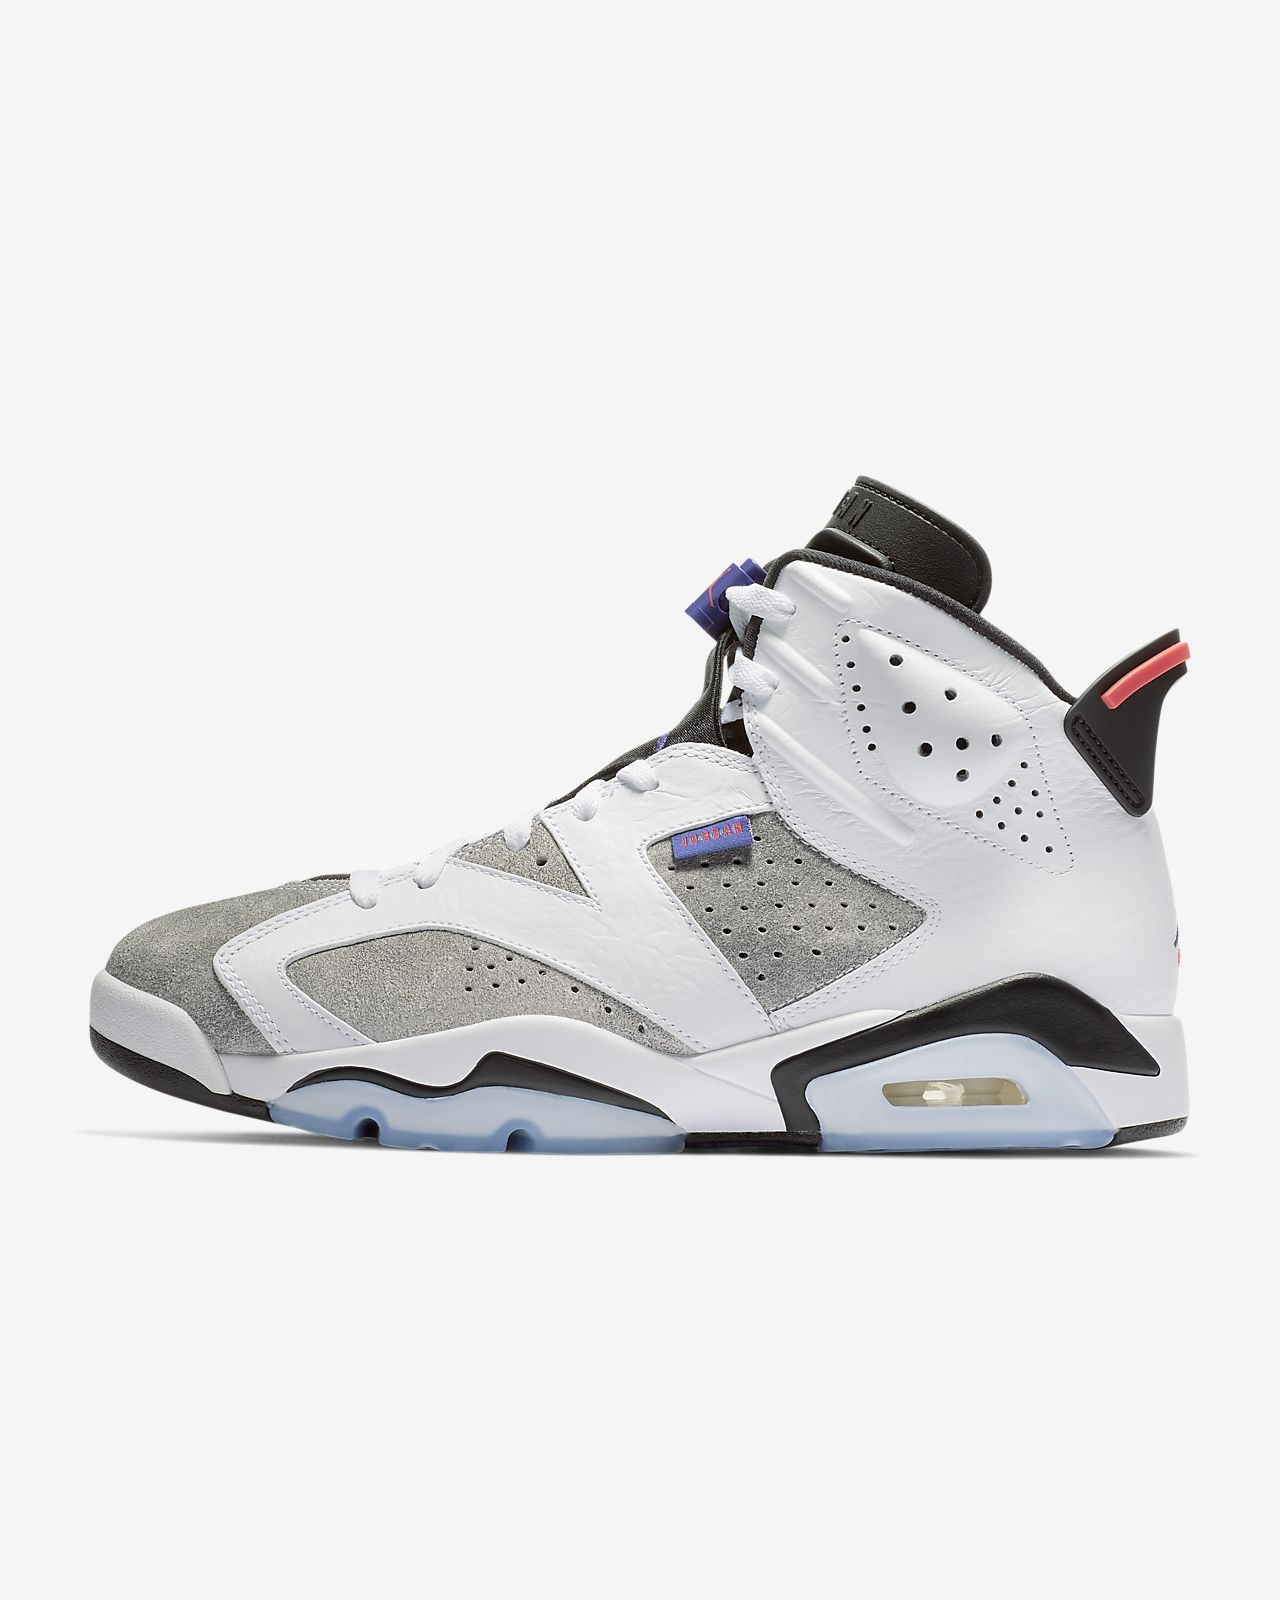 promo code bc8d5 27cf1 Air Jordan 6 Retro Men's Shoe